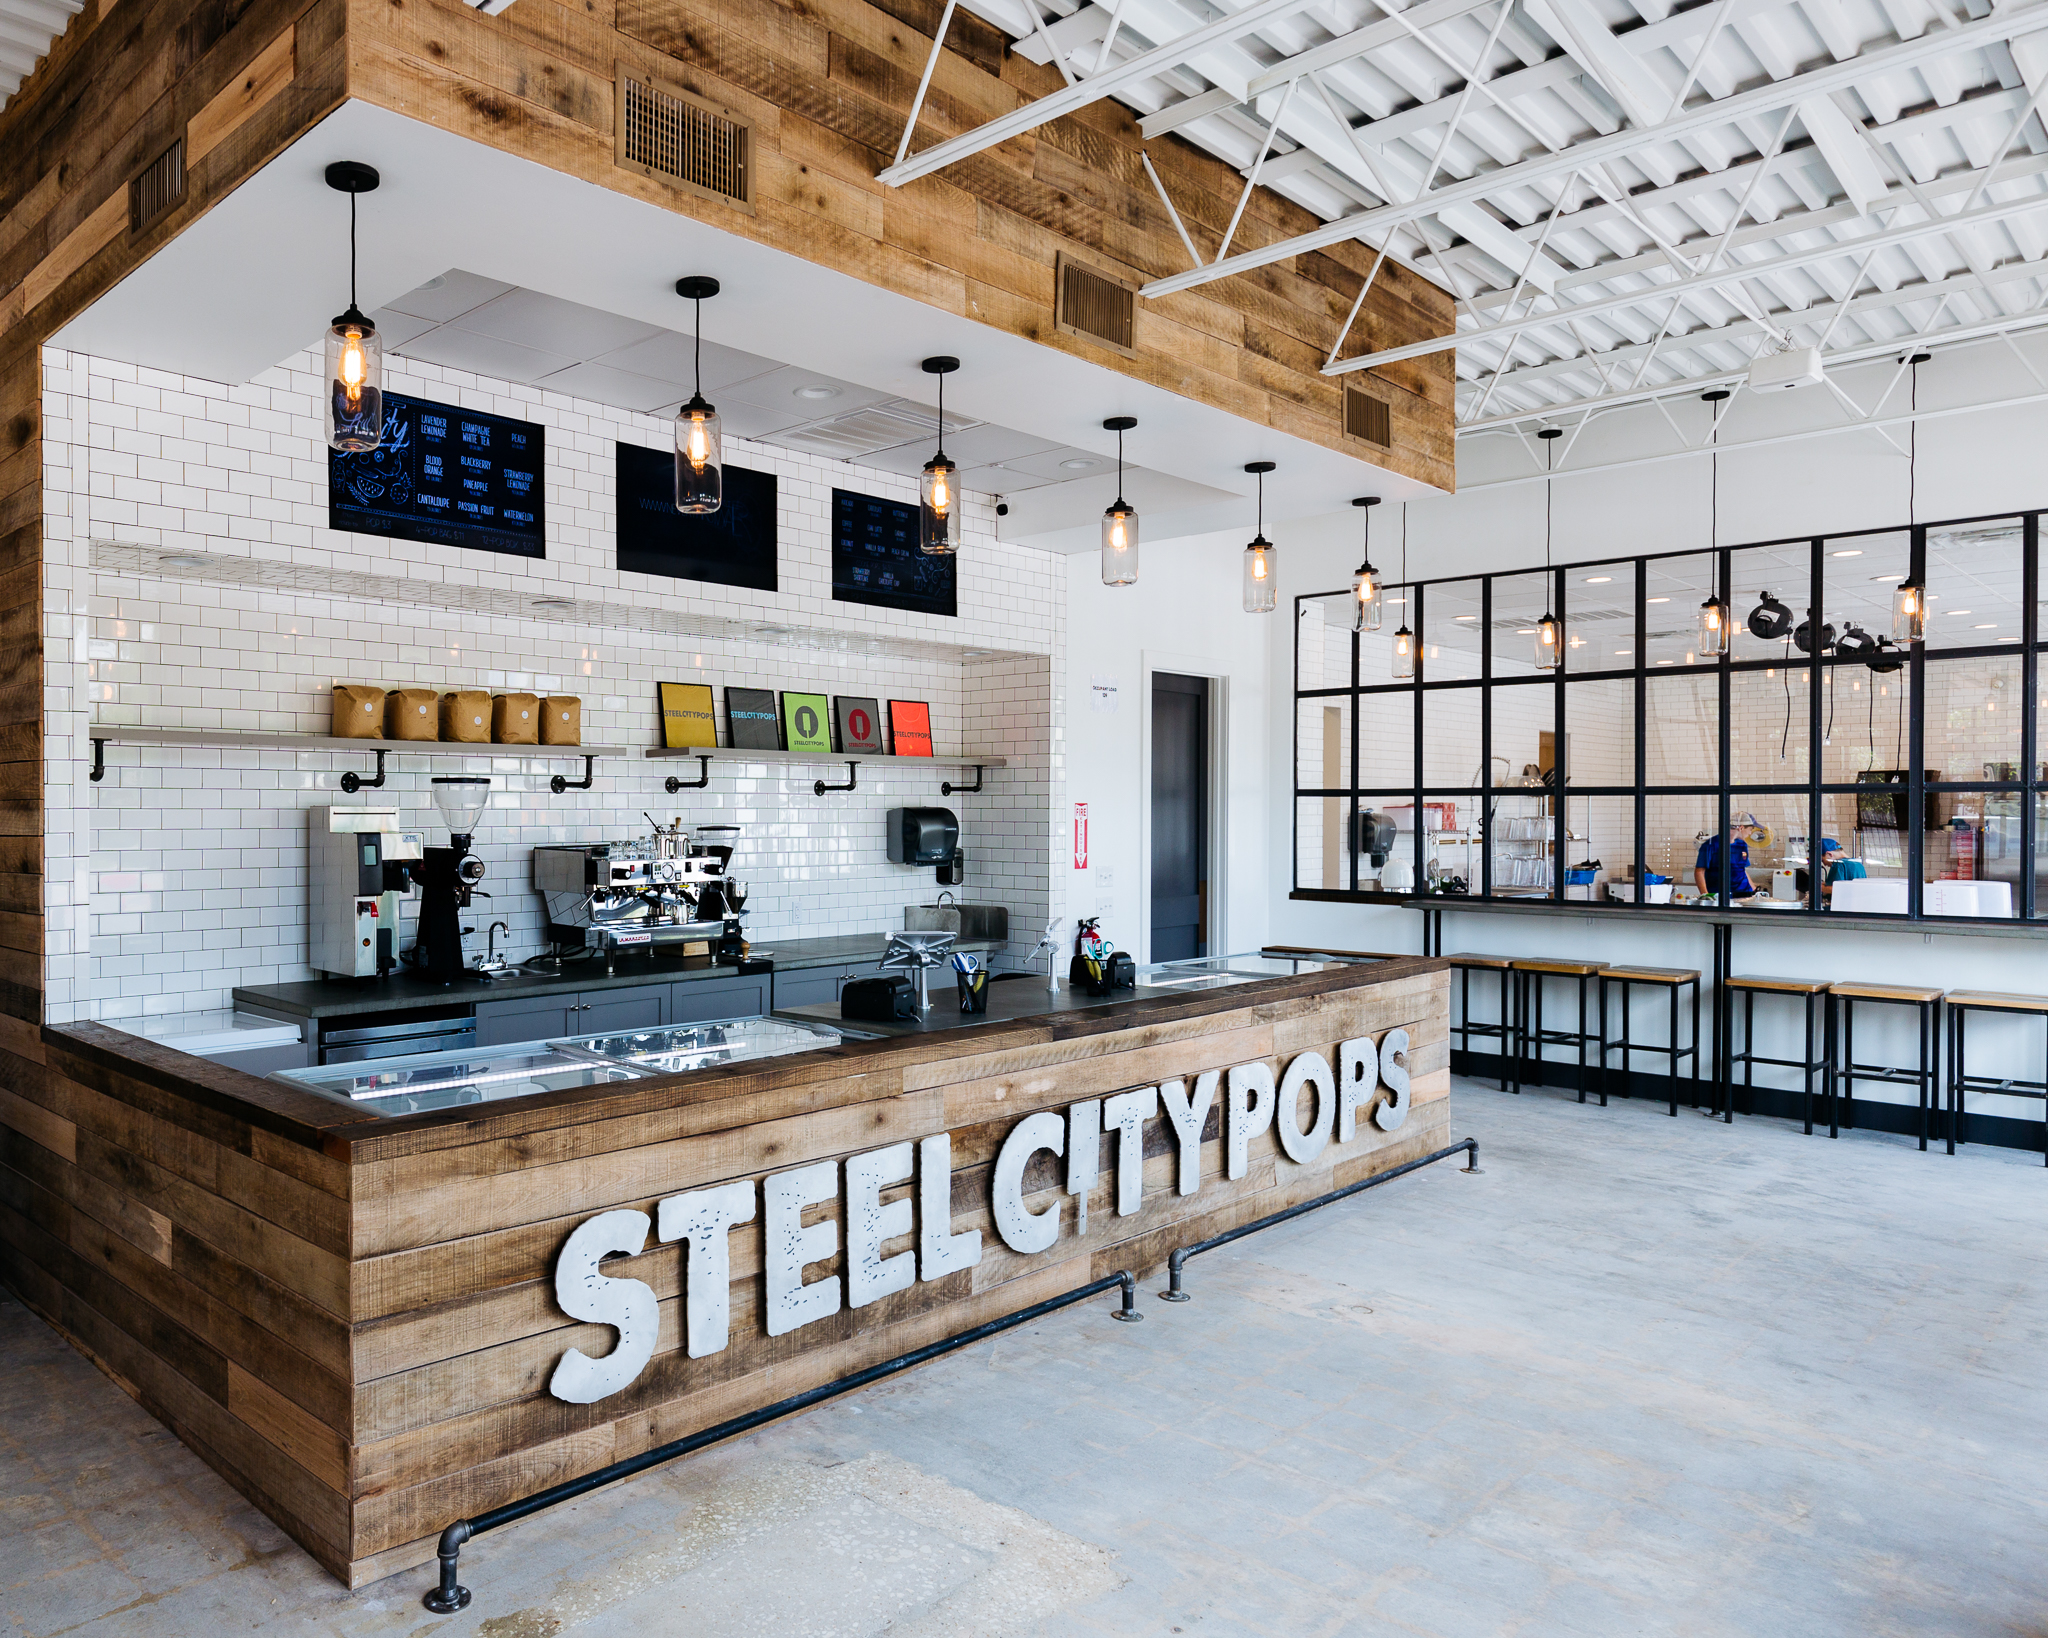 Steel City Pops in Houston. Photo: Jeff Parkes Photography